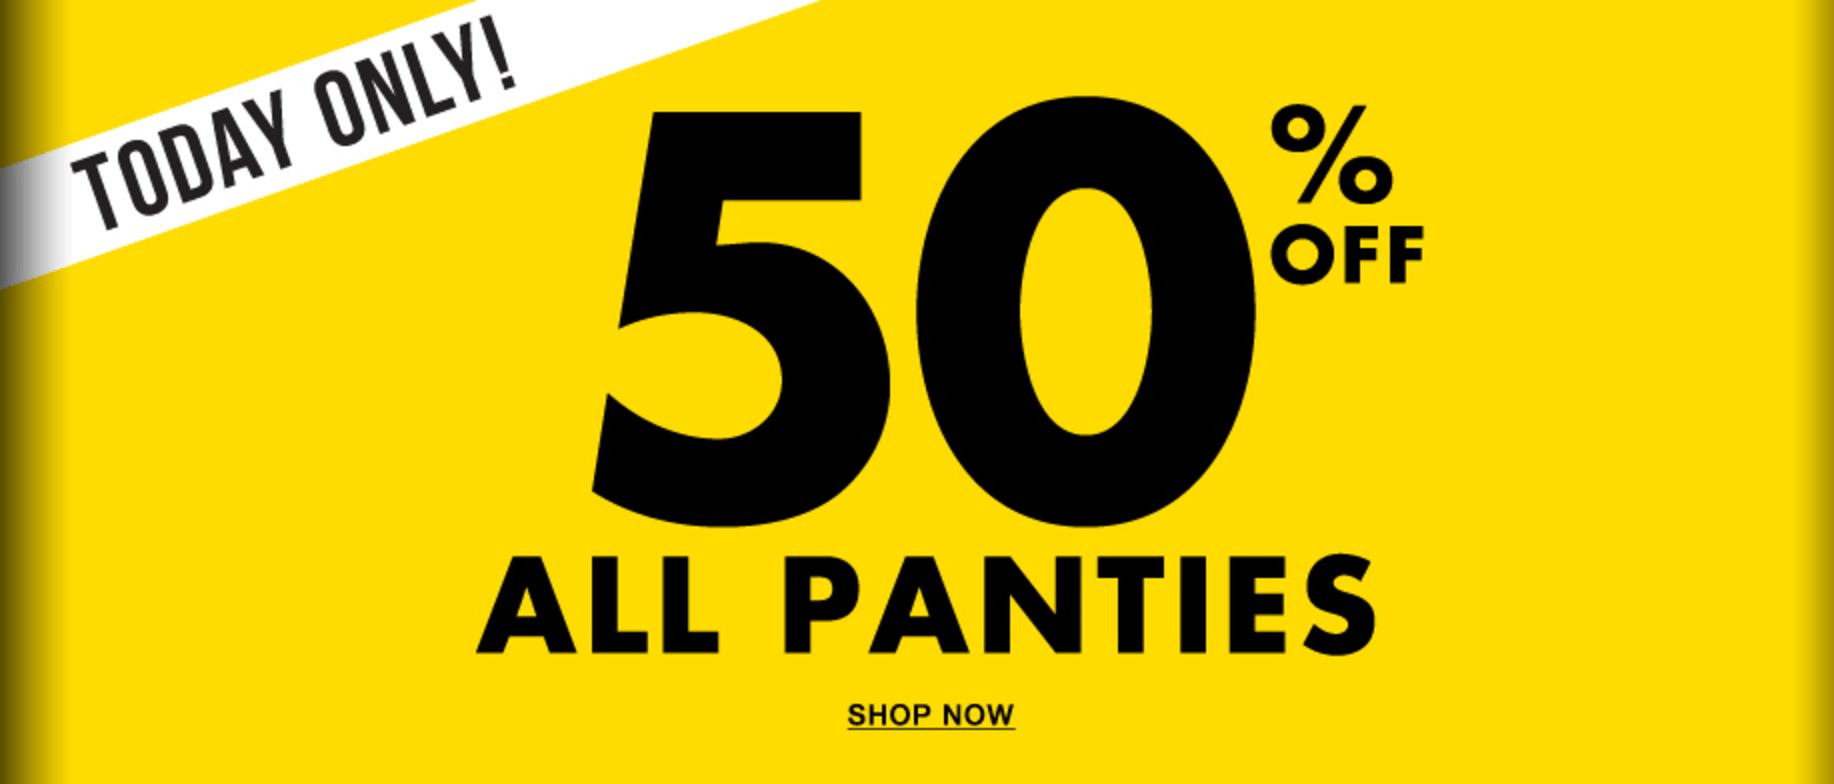 La Senza Canada Flash Sale: Today Only Save 50% Off ALL Panties